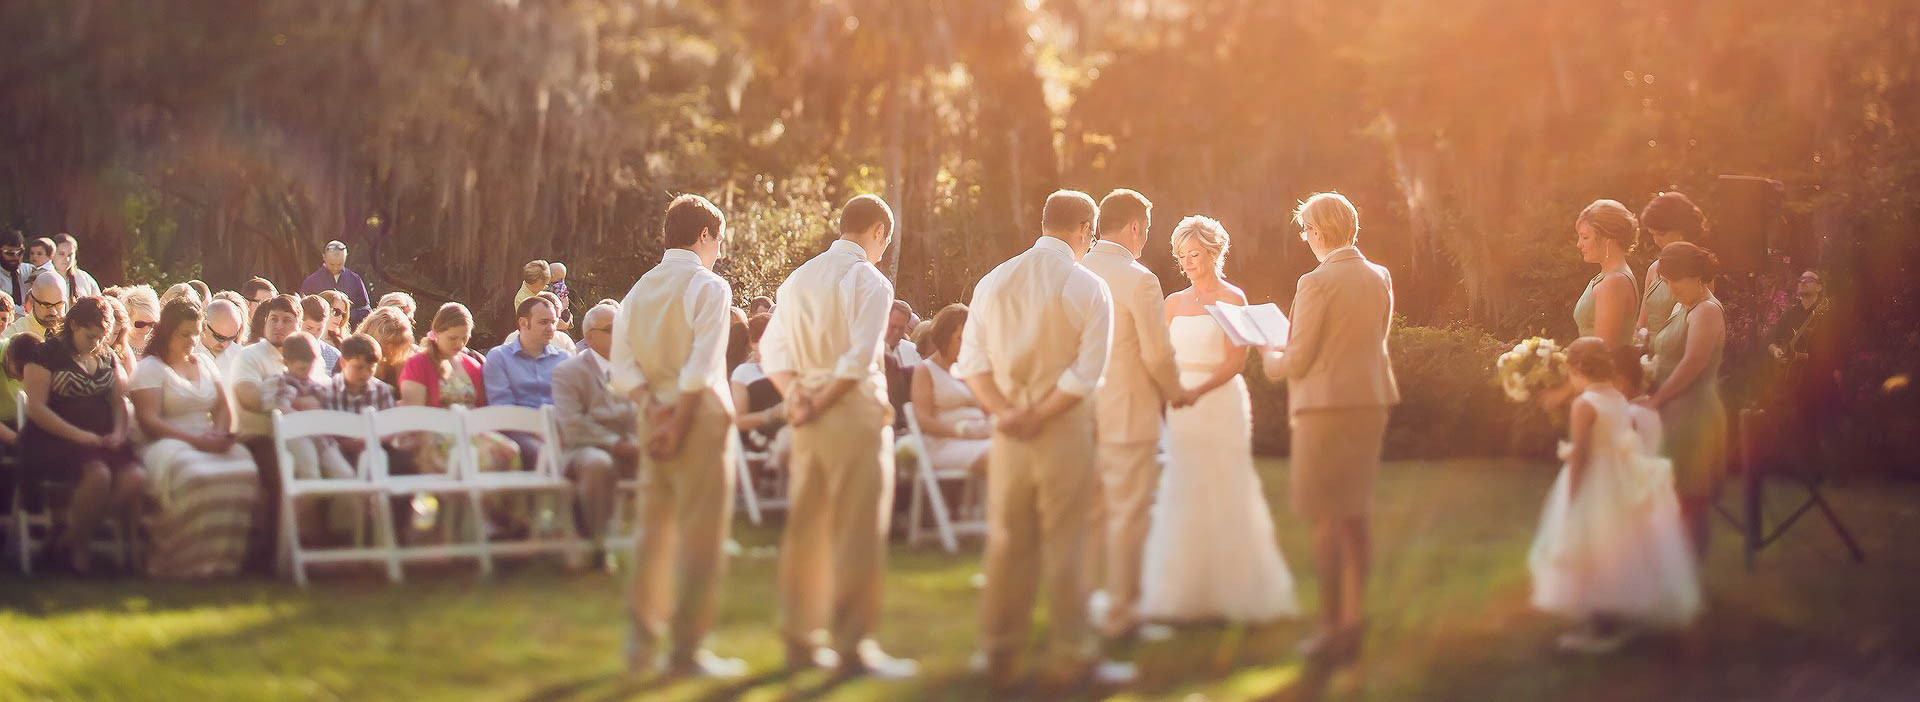 Ceremony at Magnolia Plantation and Gardens